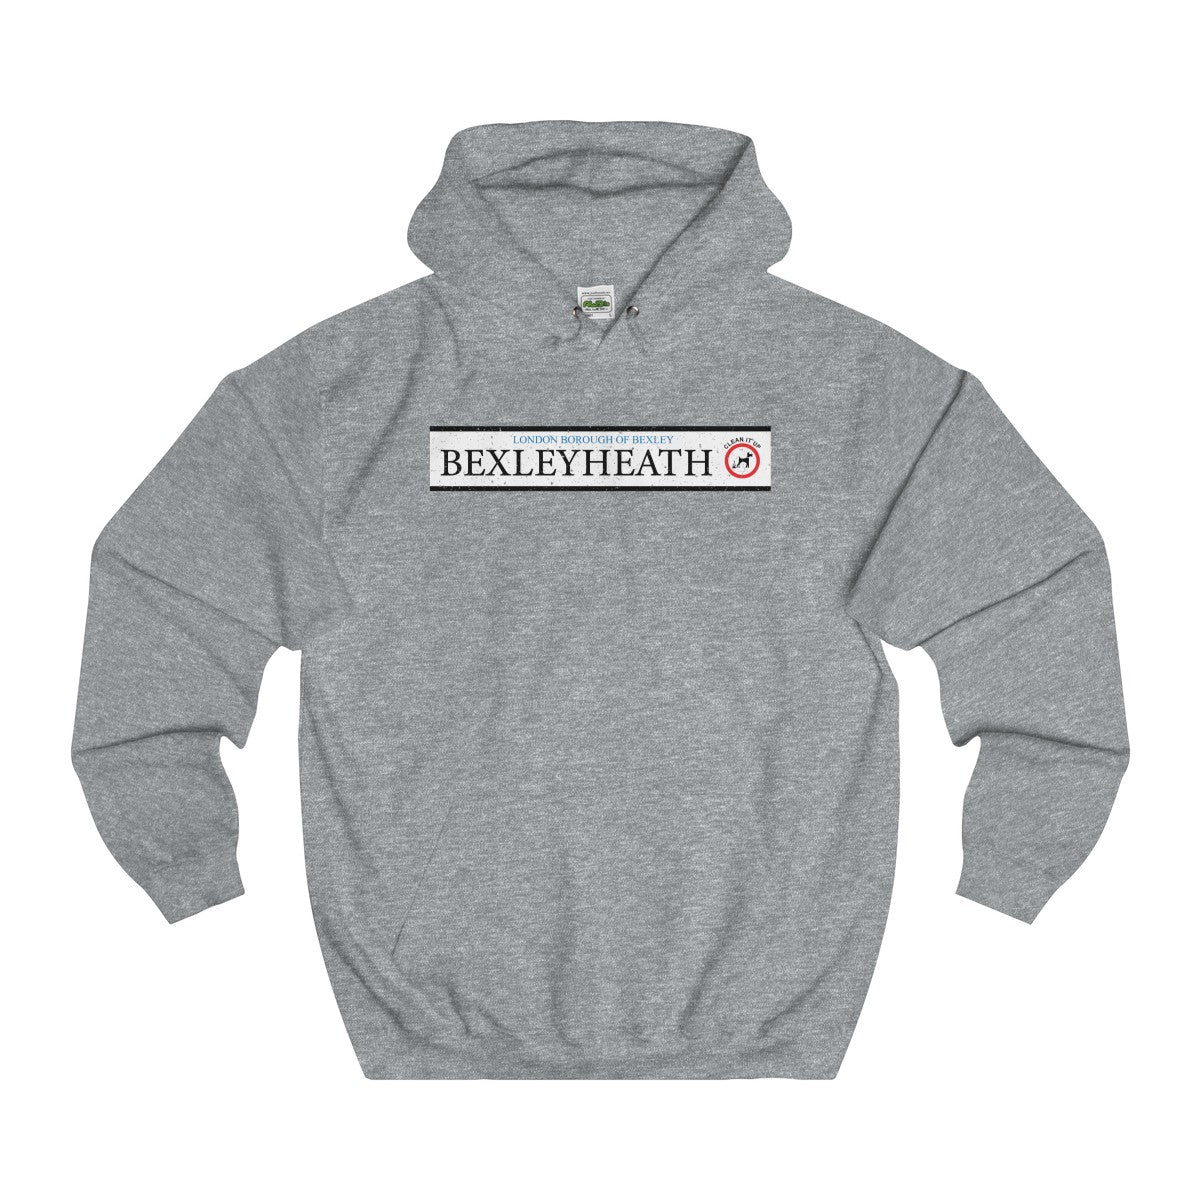 Bexleyheath Road Sign Hoodie